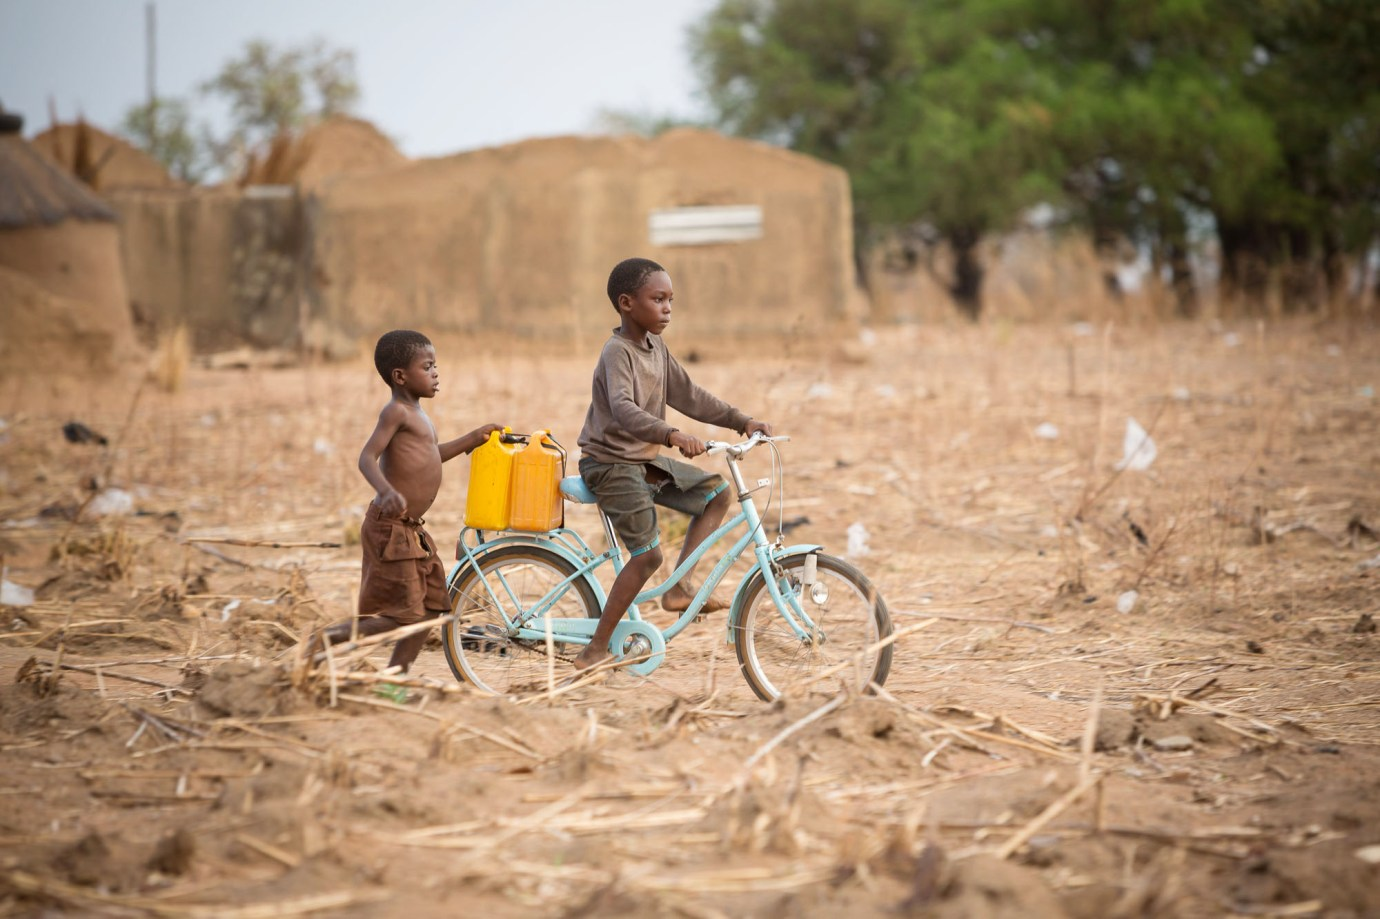 Children fetch water with a bicycle in Talensi District, Ghana.